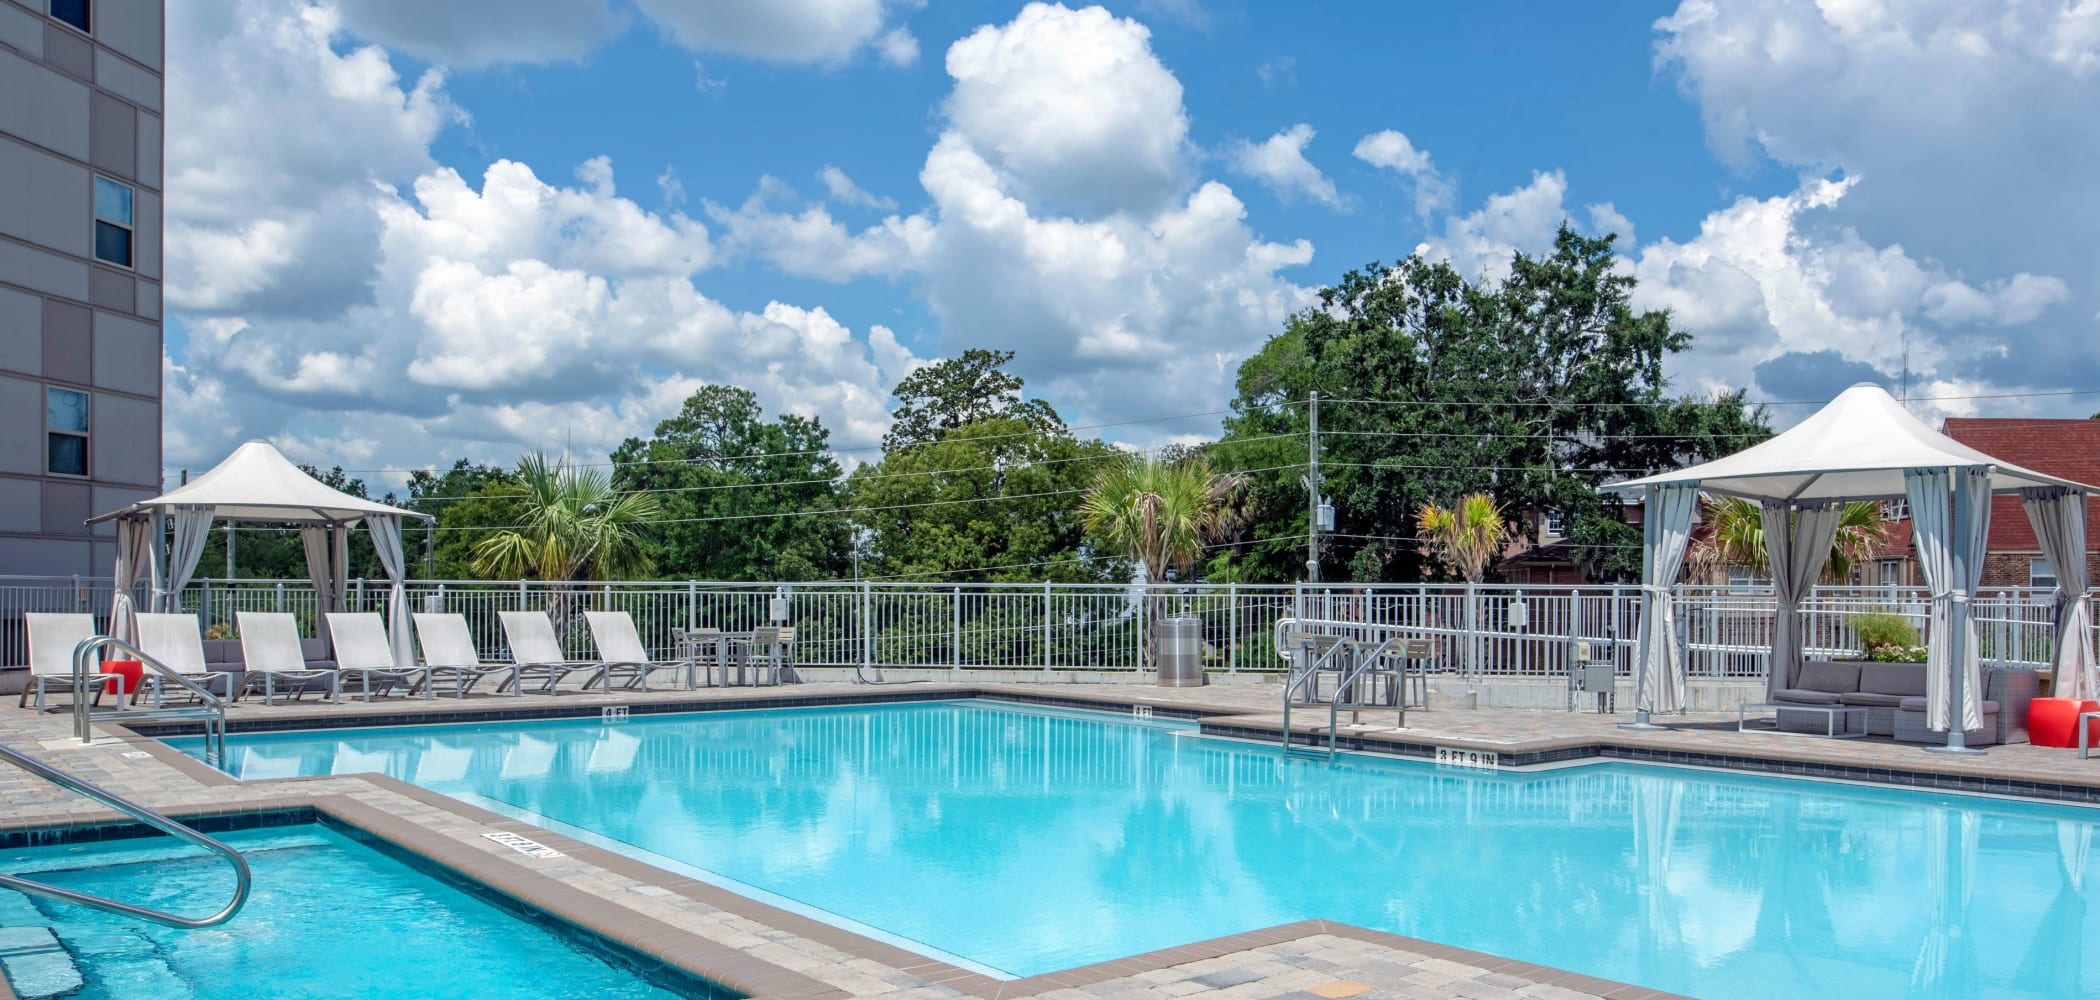 Sparkling swimming pool at Onyx in Tallahassee, Florida